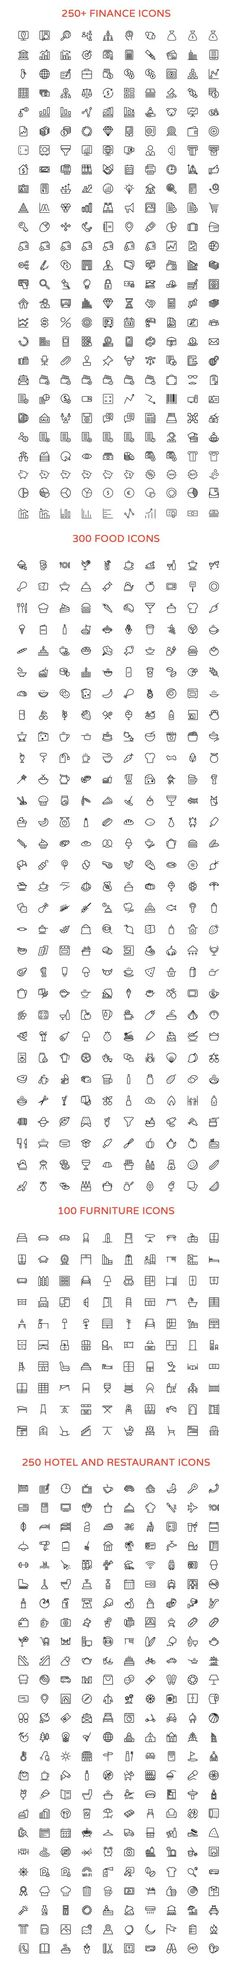 2800+ Line Vector Icons Bundle by Creative Stall on Creative Market